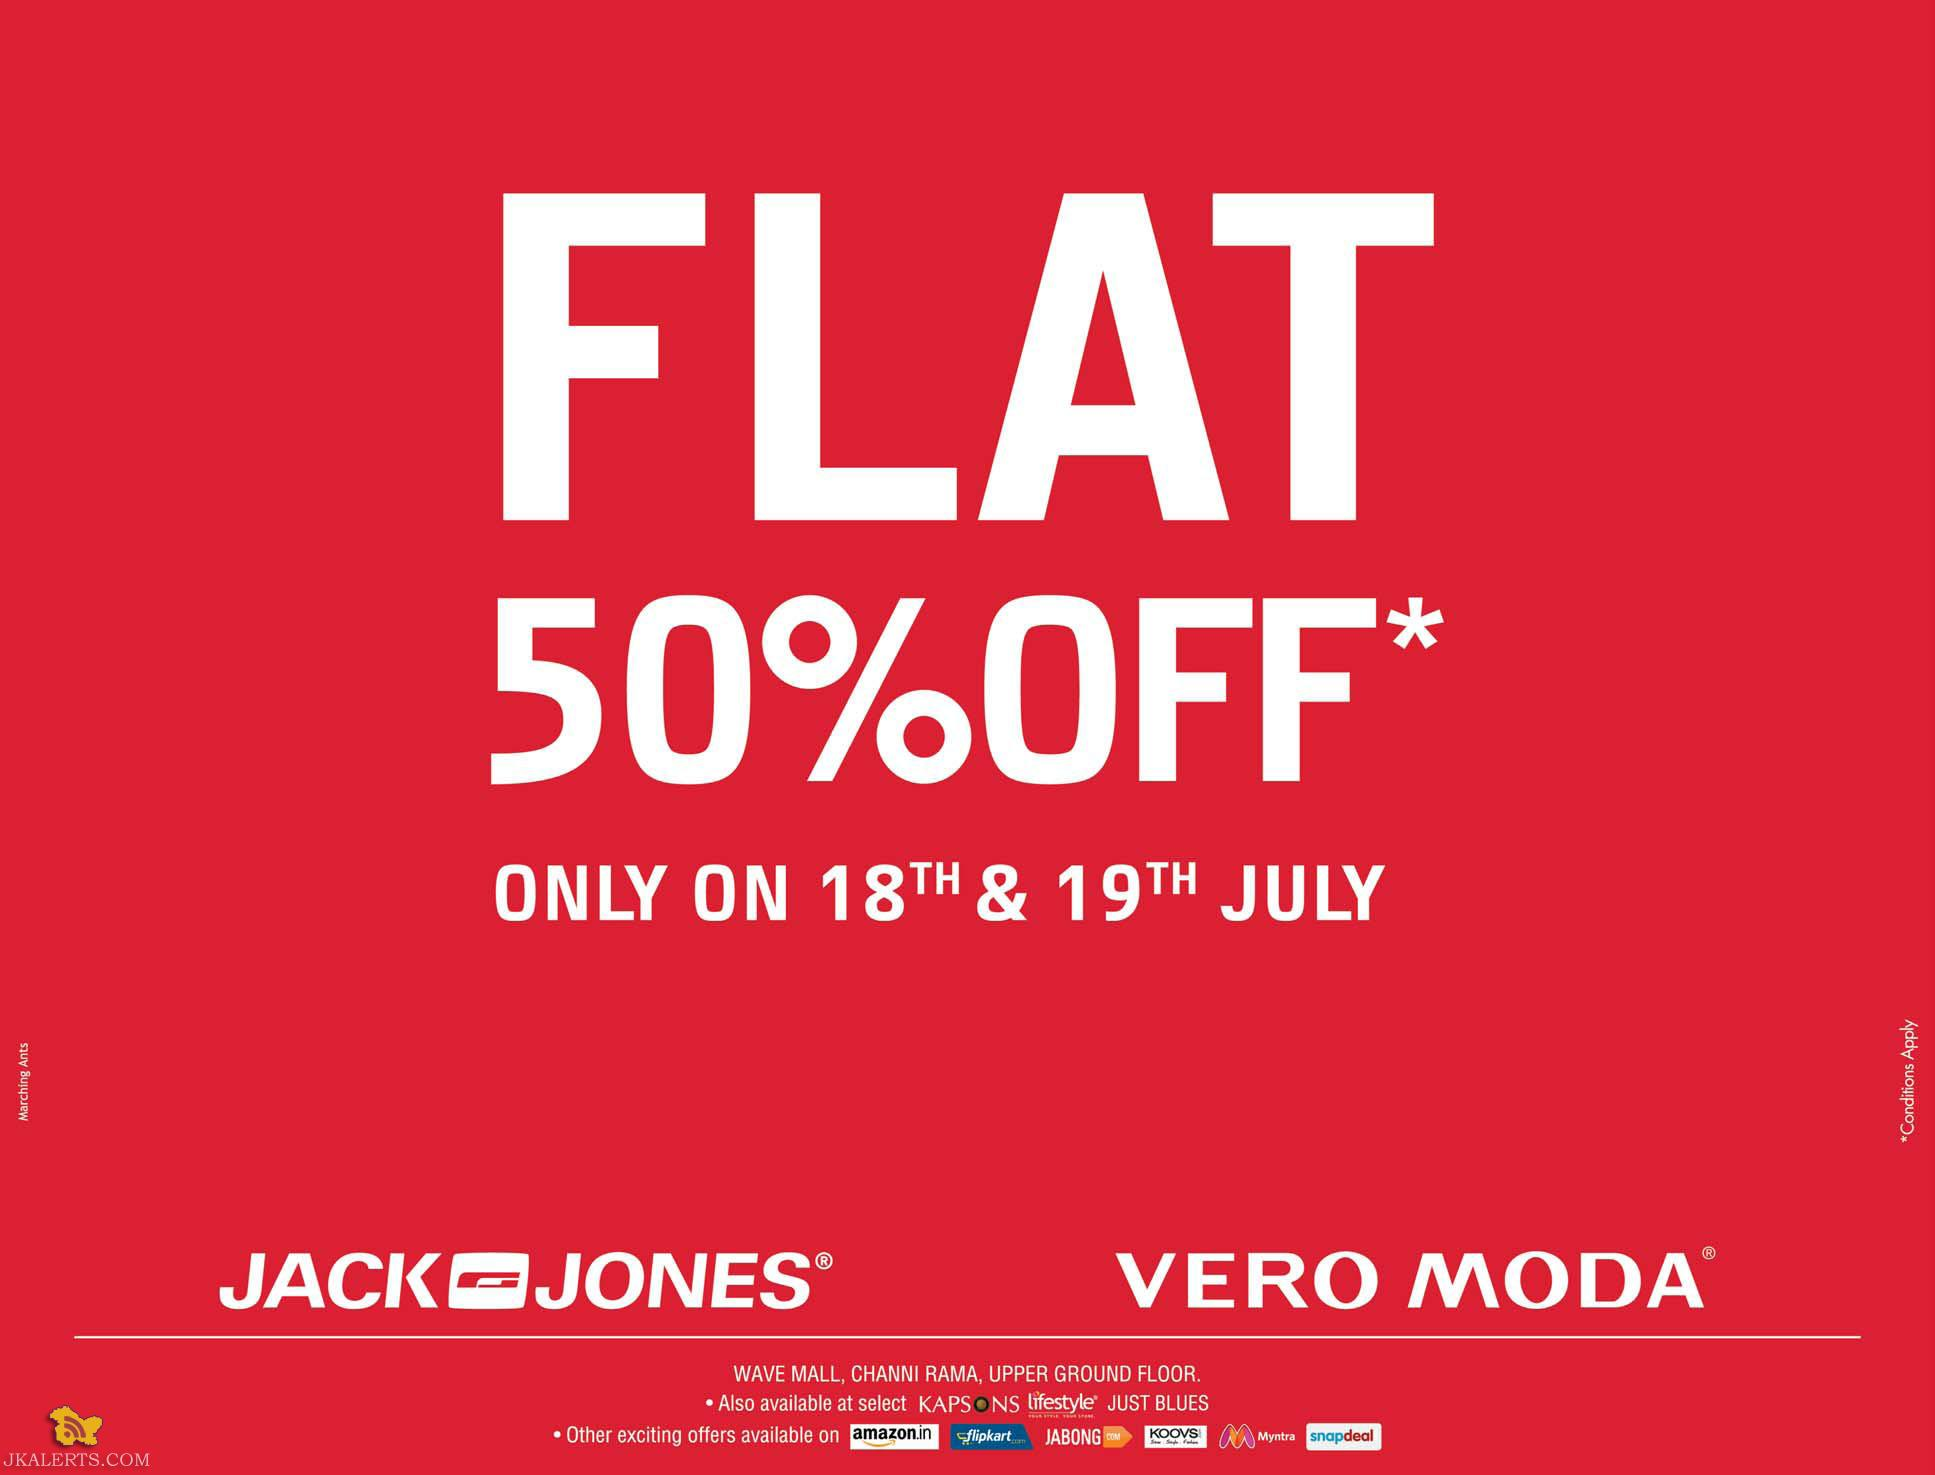 Sale on Jack and Jones Vero Moda, Flat 50% off in wave mall, lifestyle , Justblues